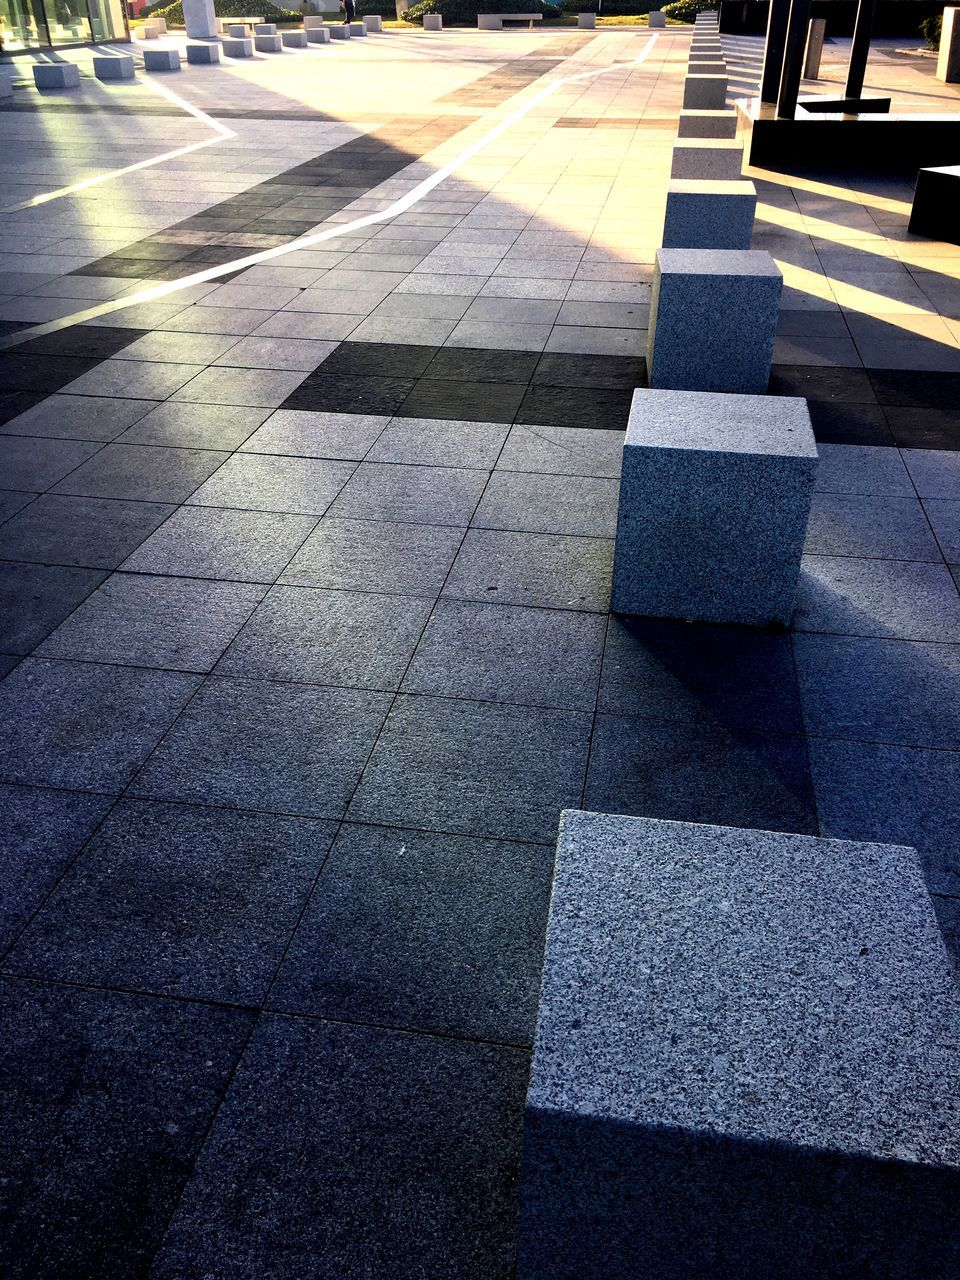 sunlight, transportation, flooring, day, no people, pattern, shadow, tile, footpath, city, architecture, outdoors, sign, road marking, tiled floor, nature, direction, street, symbol, high angle view, paving stone, surface level